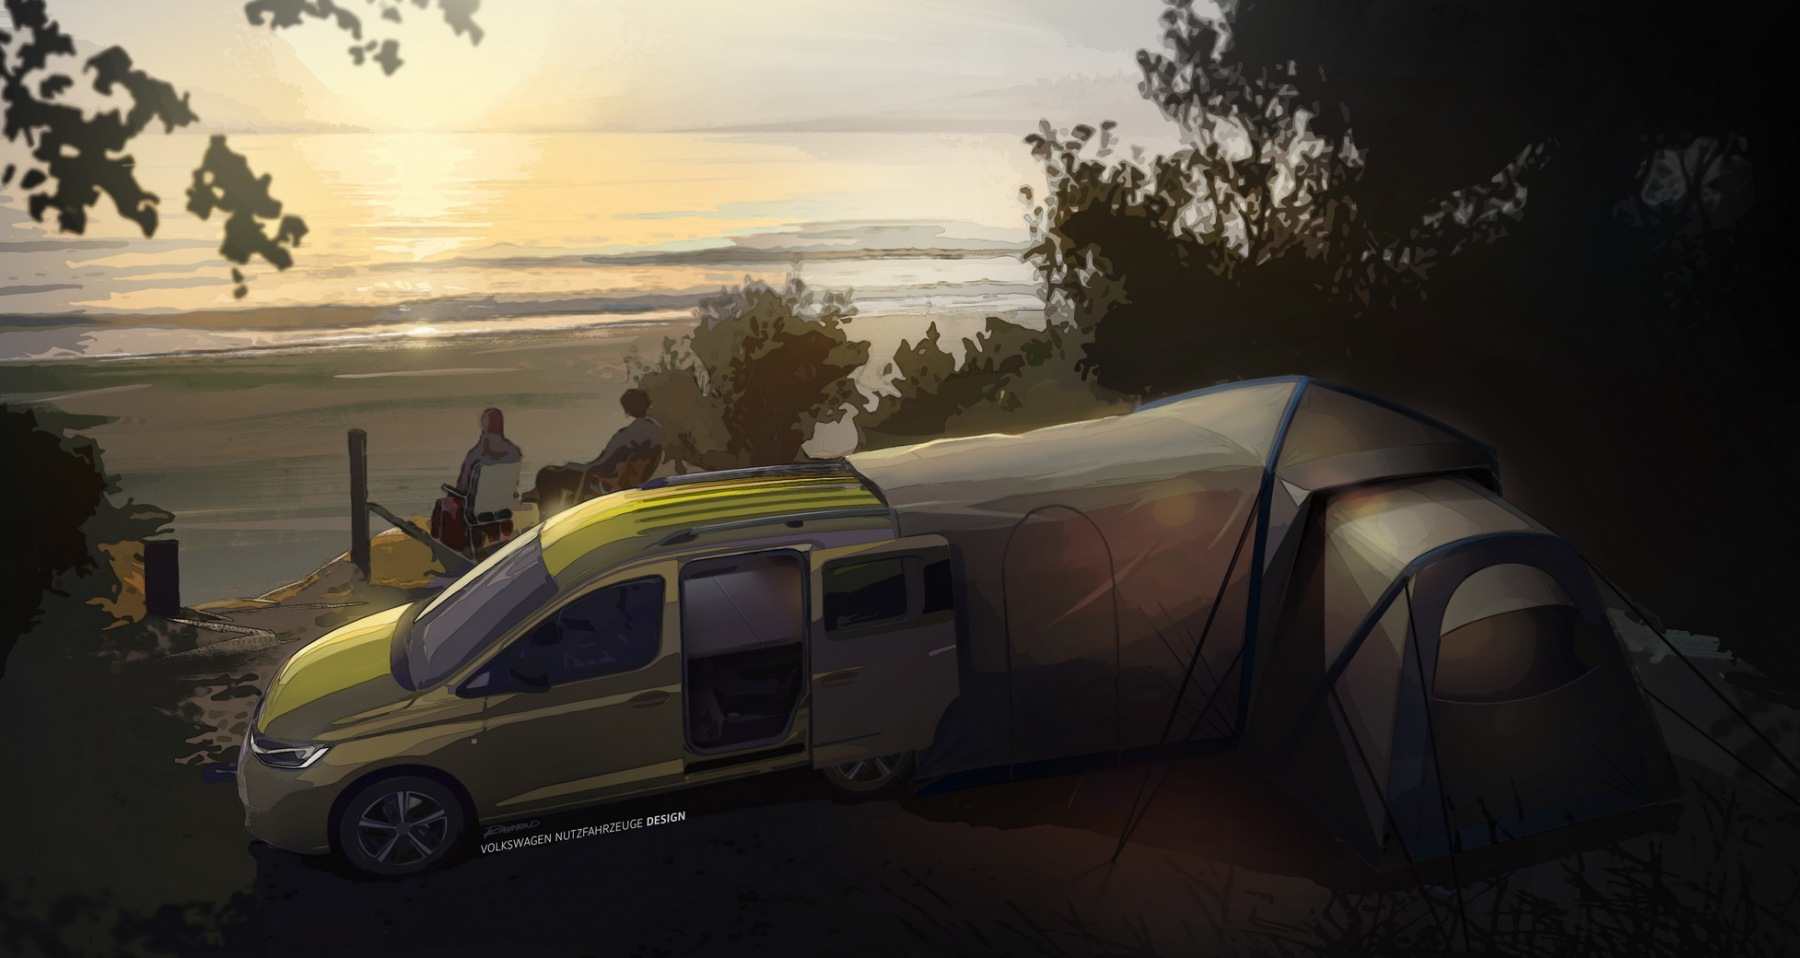 Volkswagen Caddy Mini-Camper 2021 - Teaser